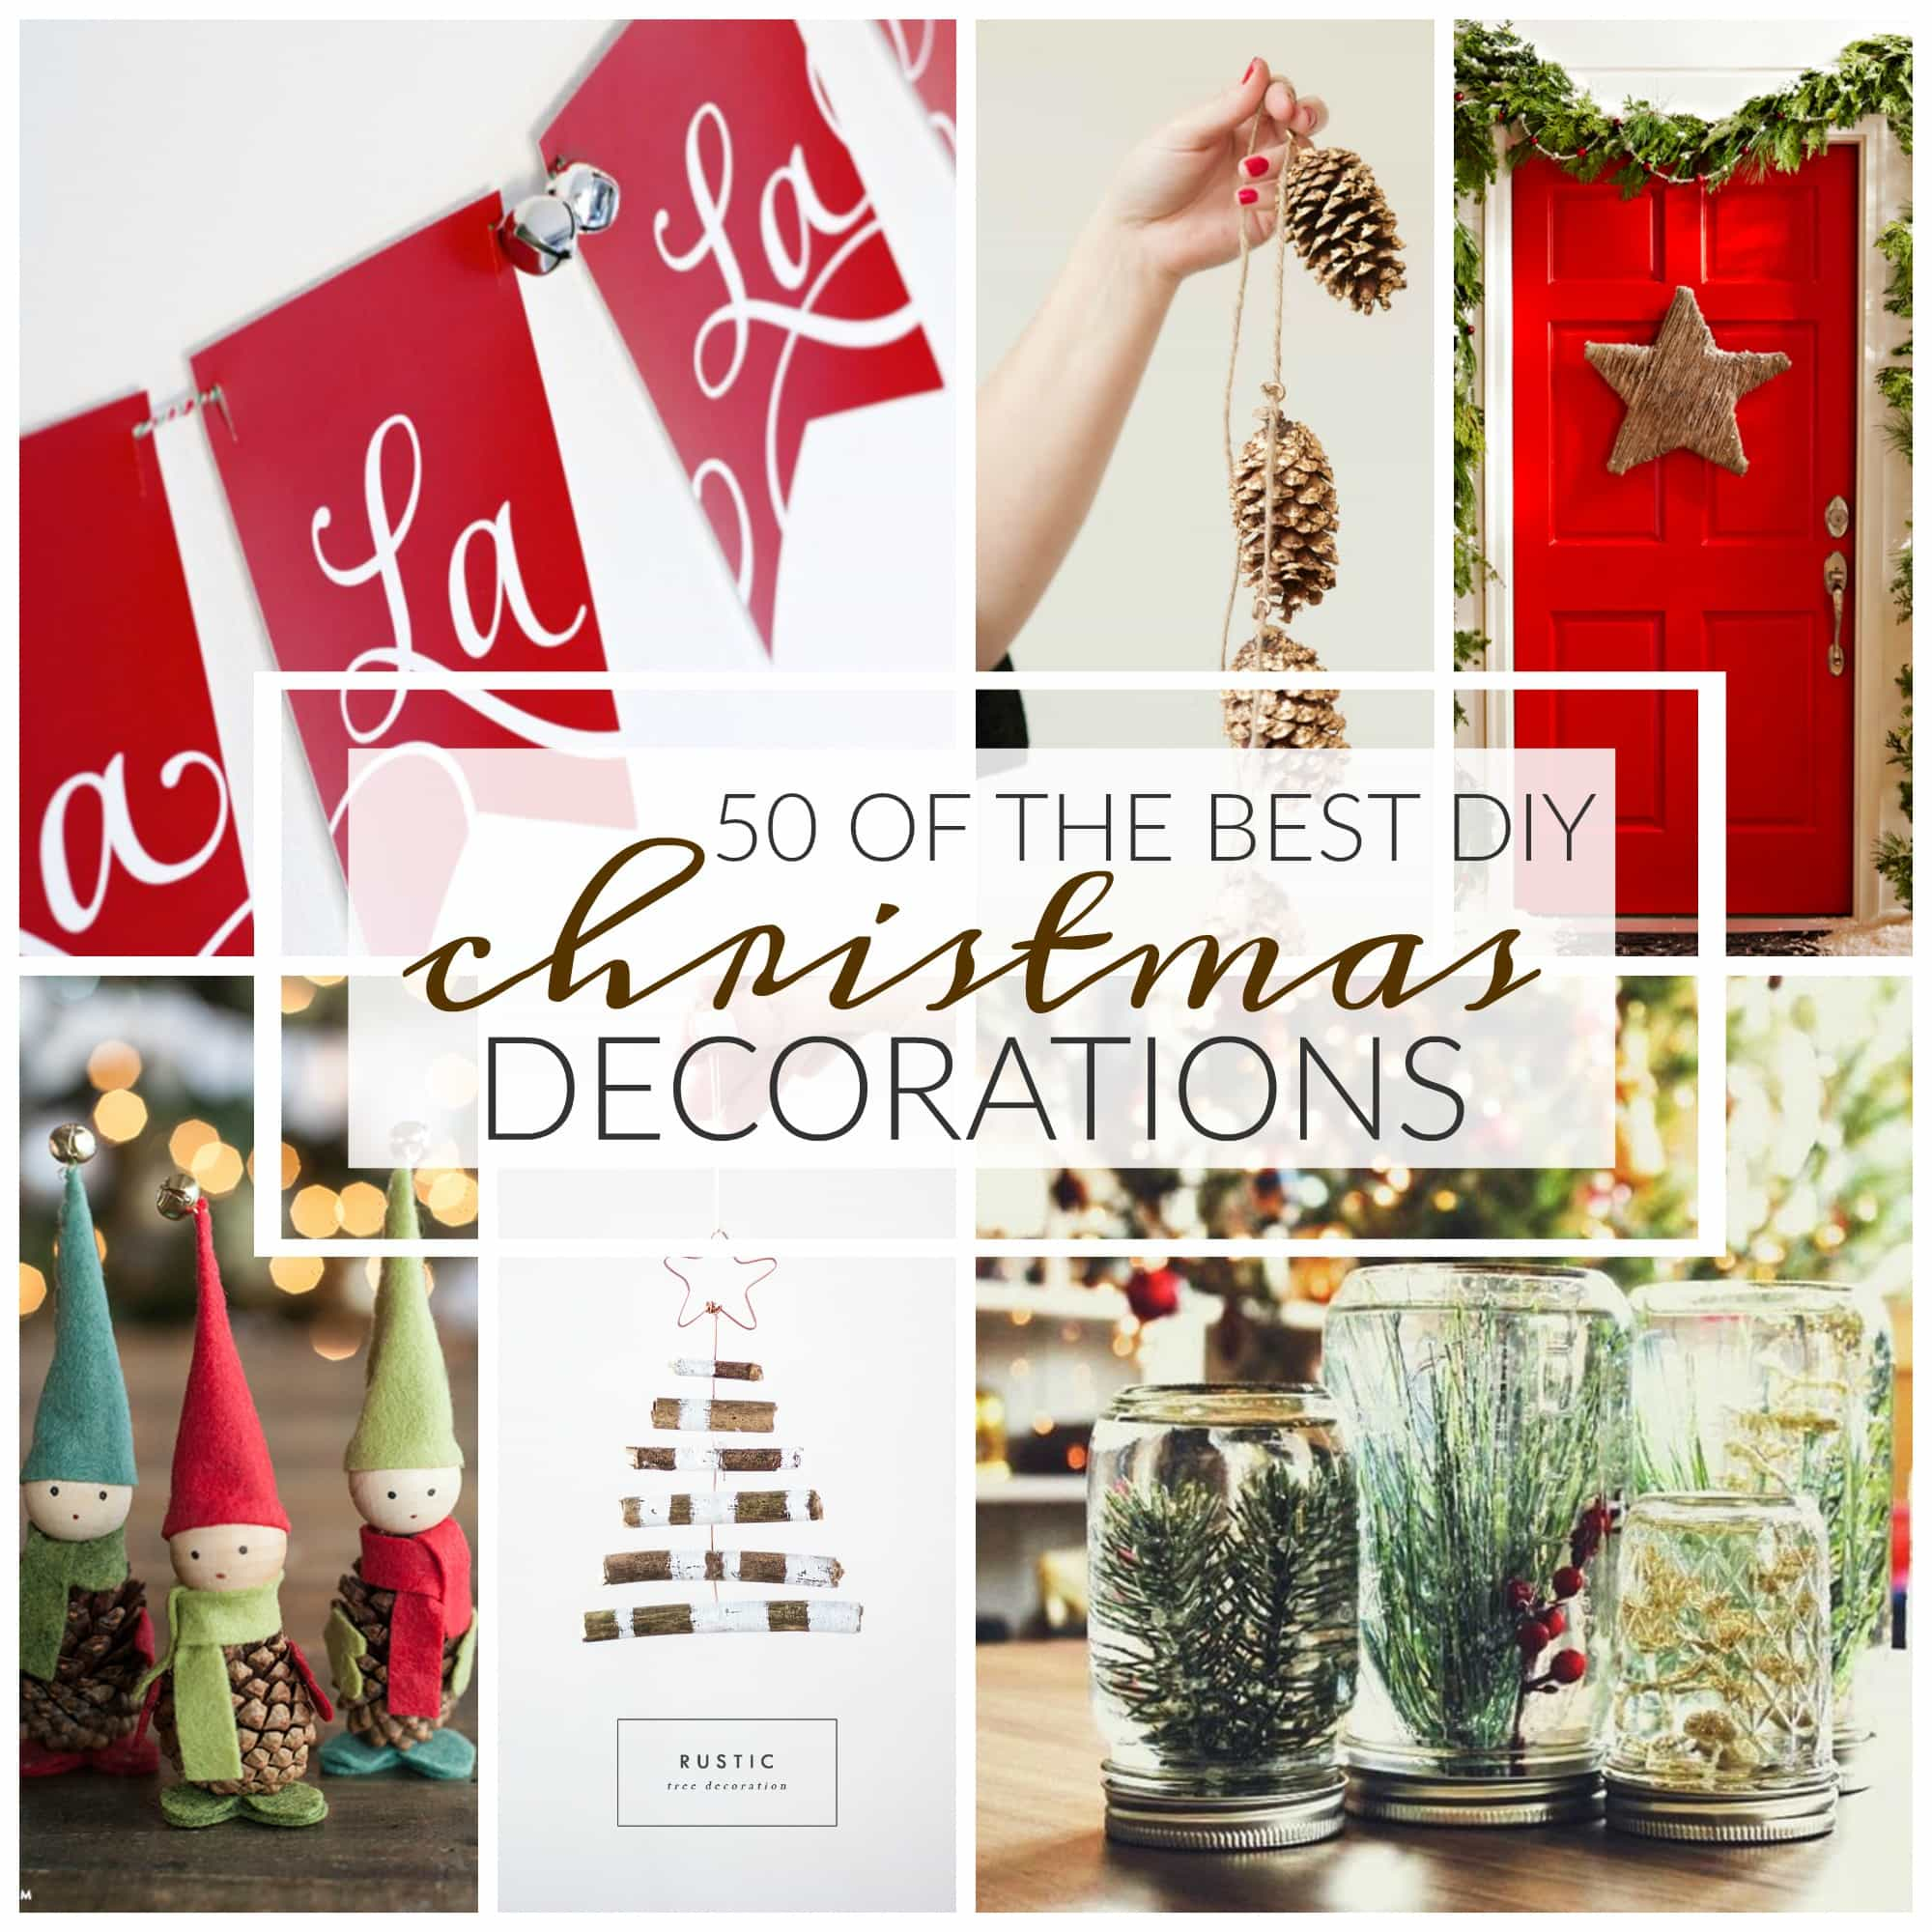 50 of the Best DIY Christmas Decorations - A Dash of Sanity